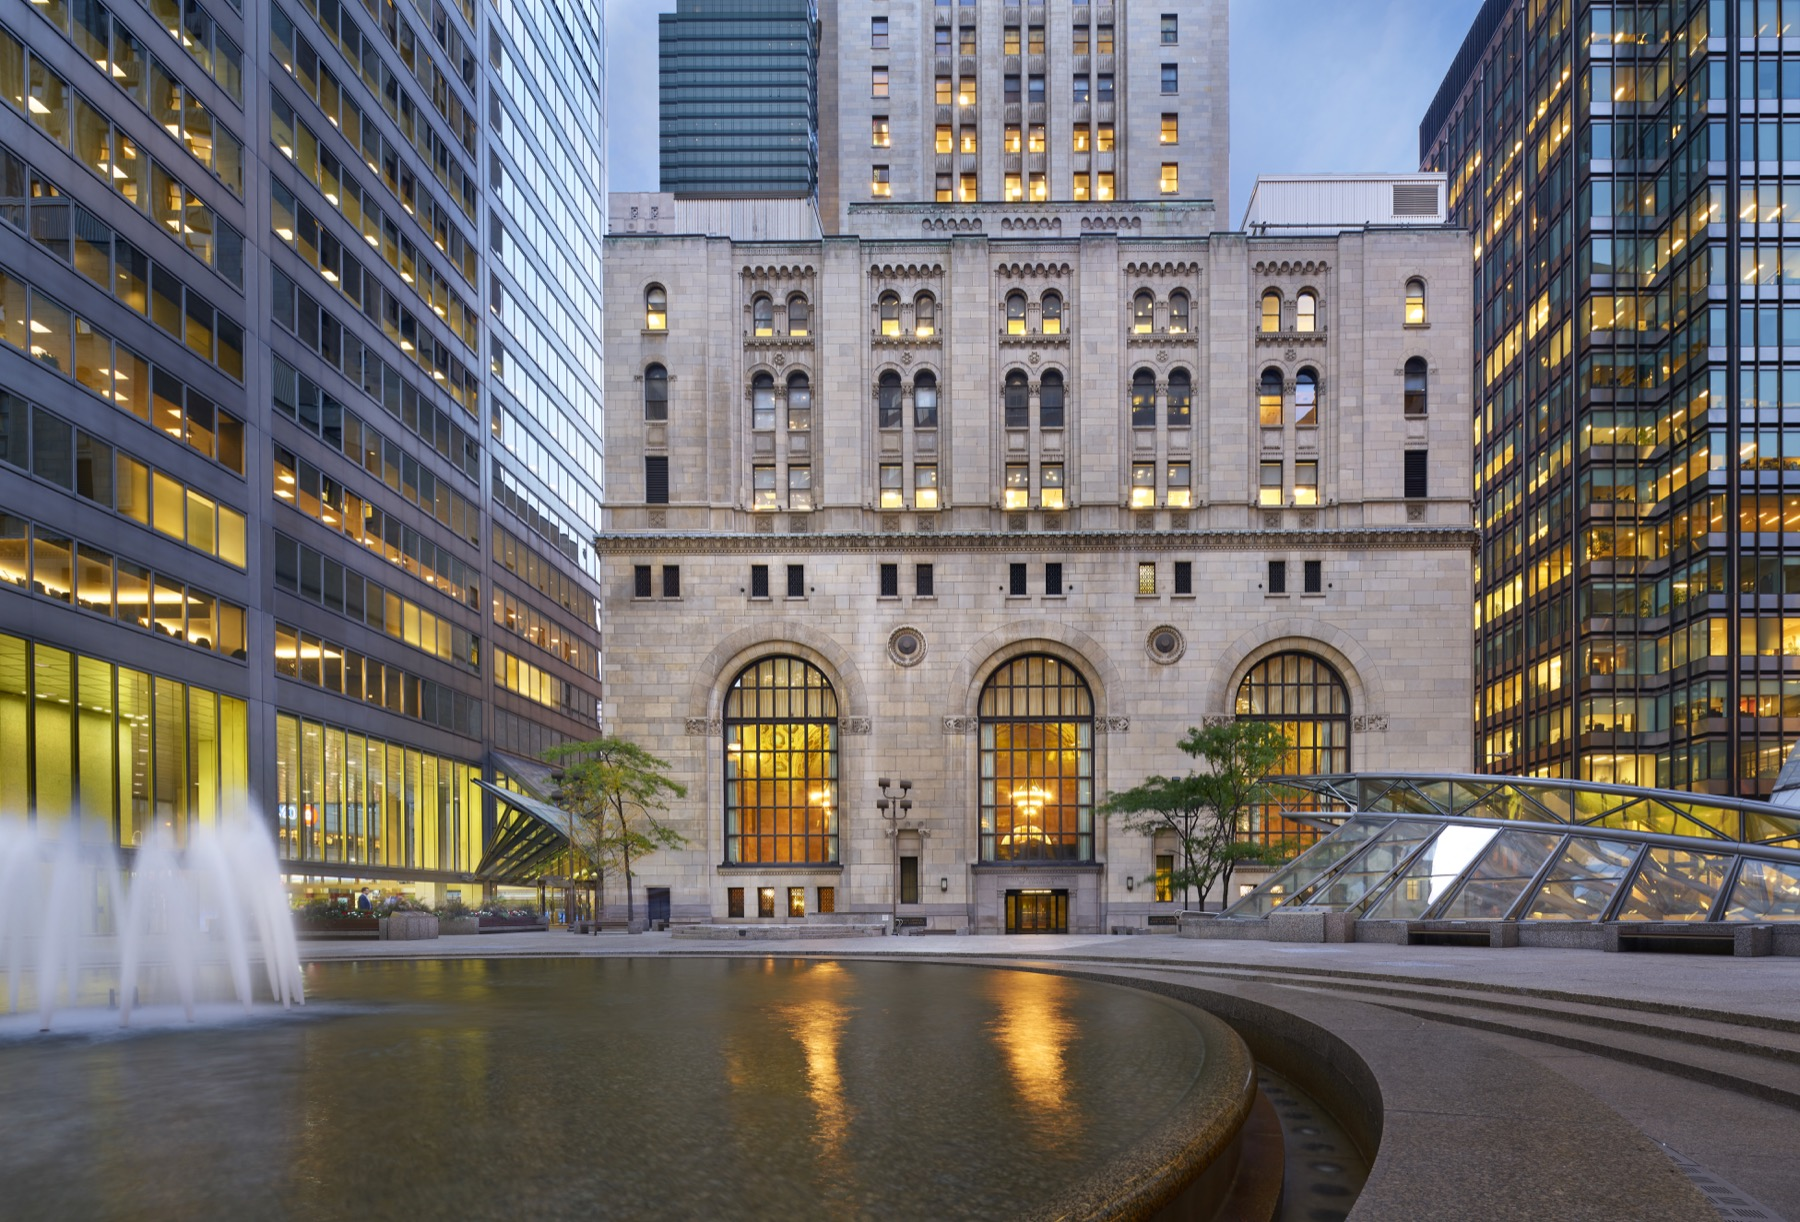 About Commerce Court